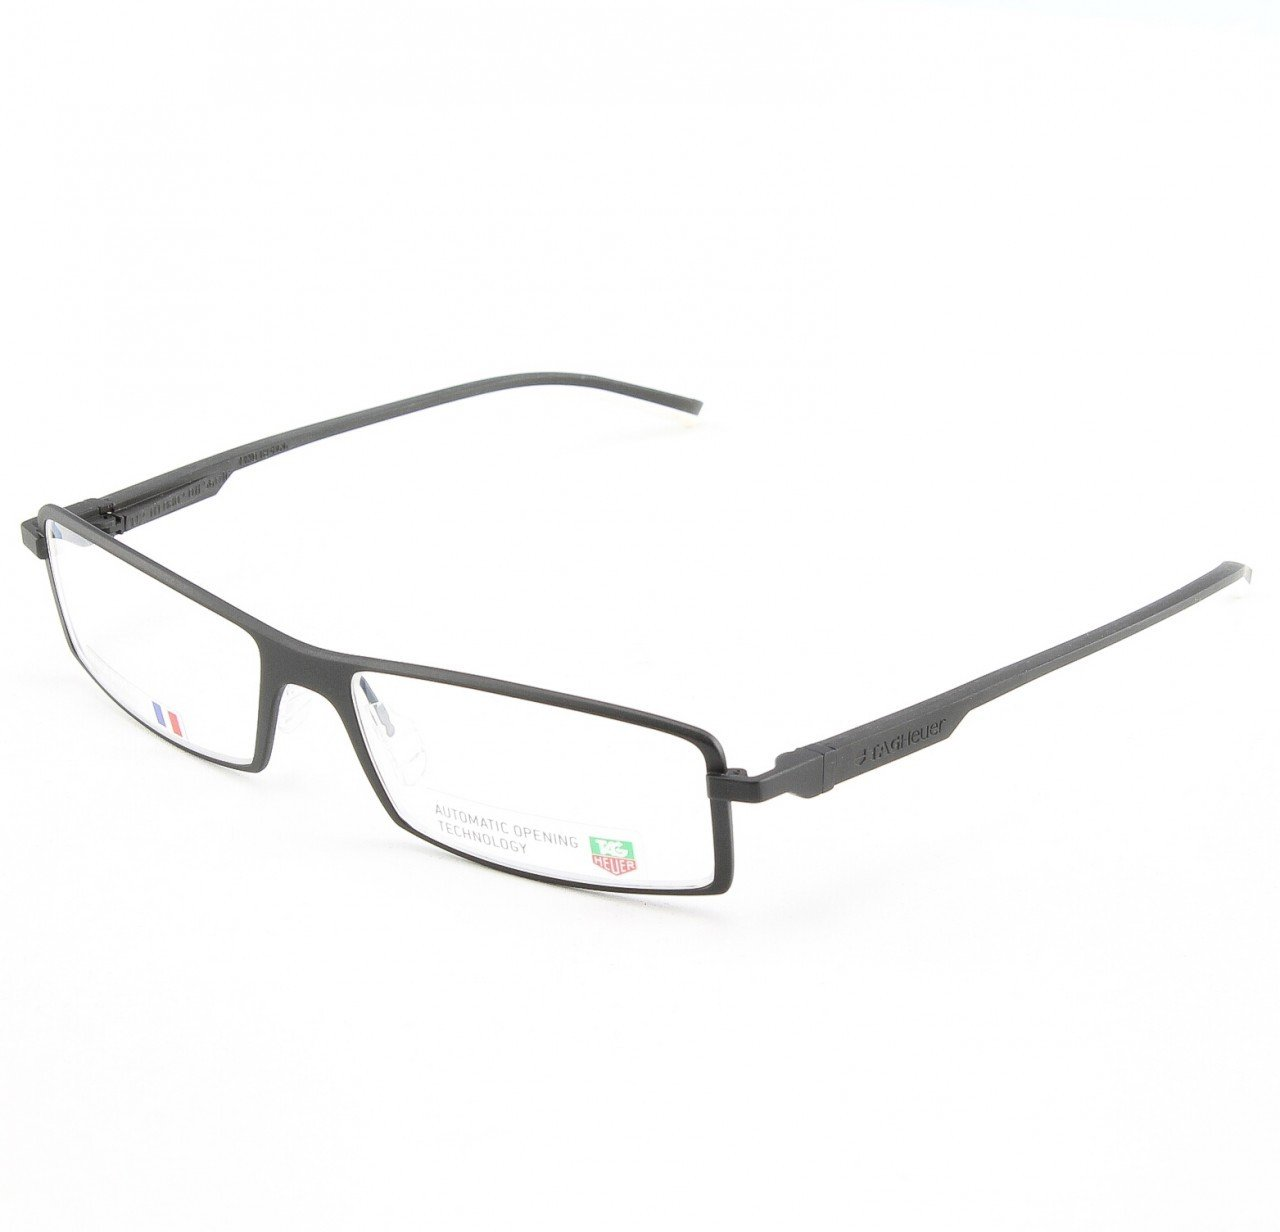 TAG Heuer 802 Uni Eyeglasses Col. 11 Black and White with Clear Lenses